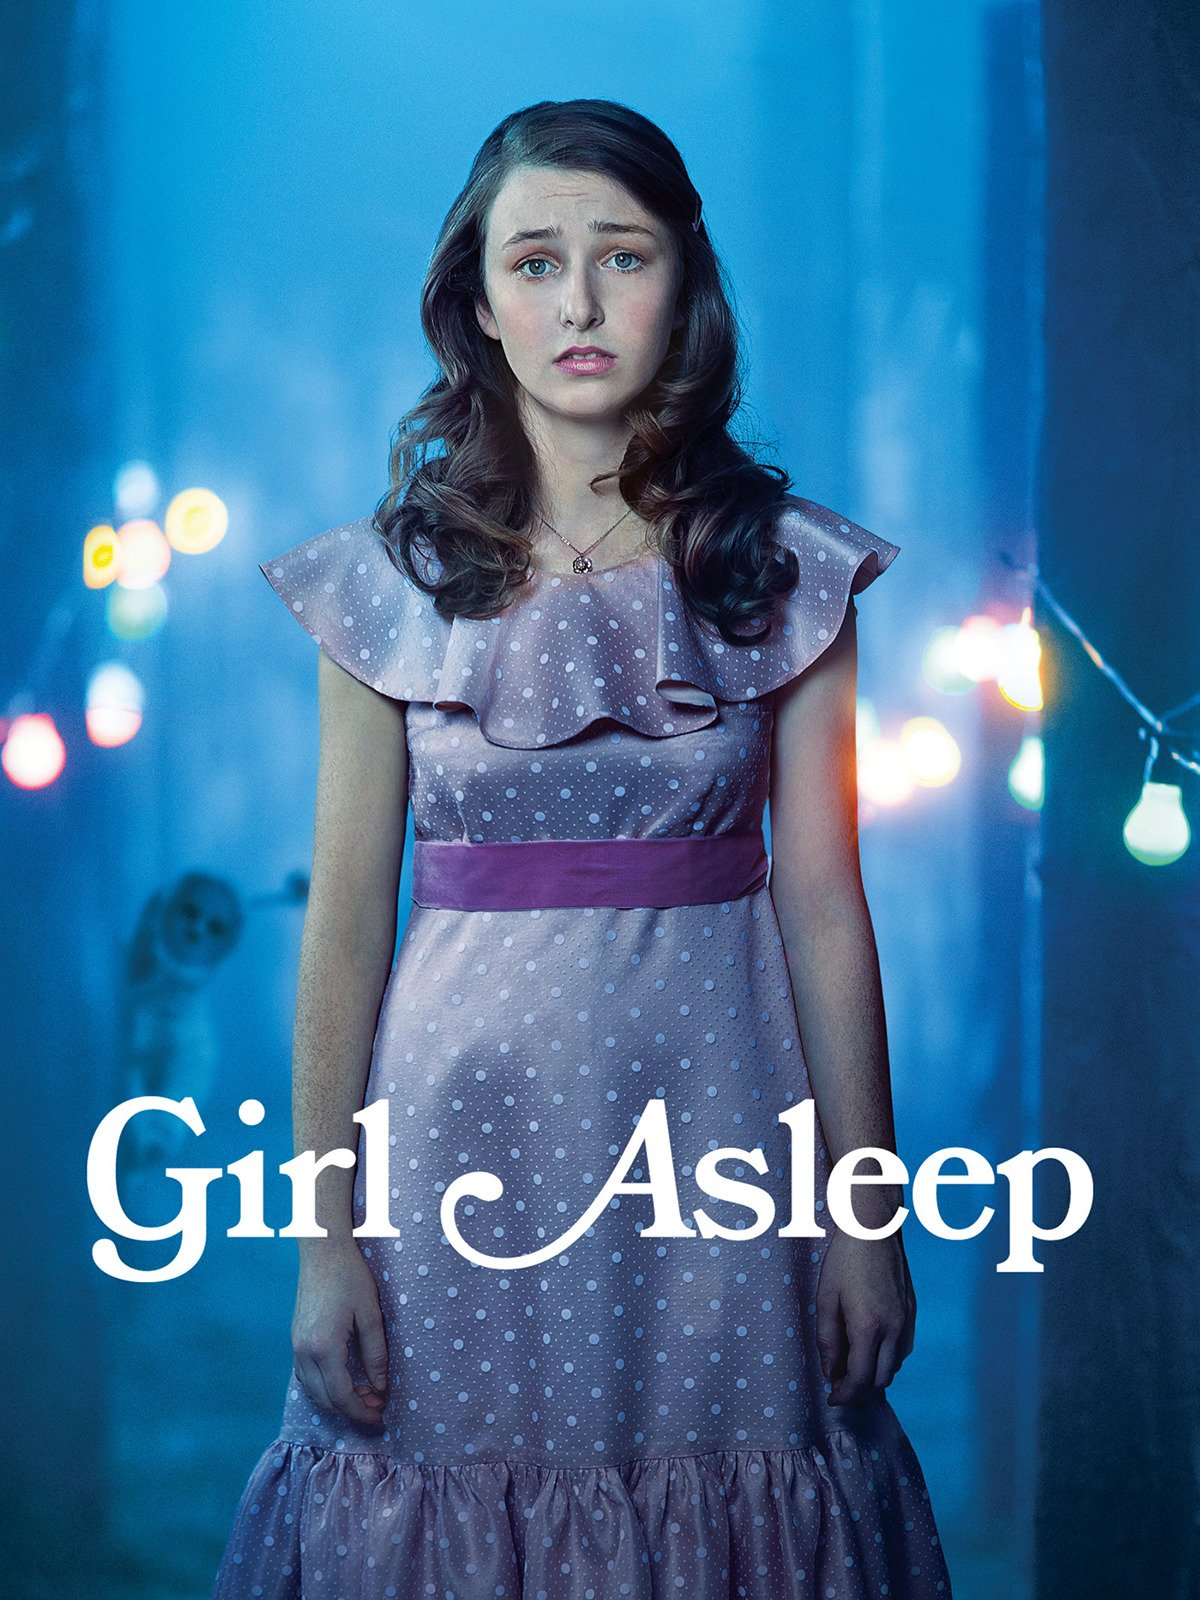 Girl Asleep on Amazon Prime Video UK